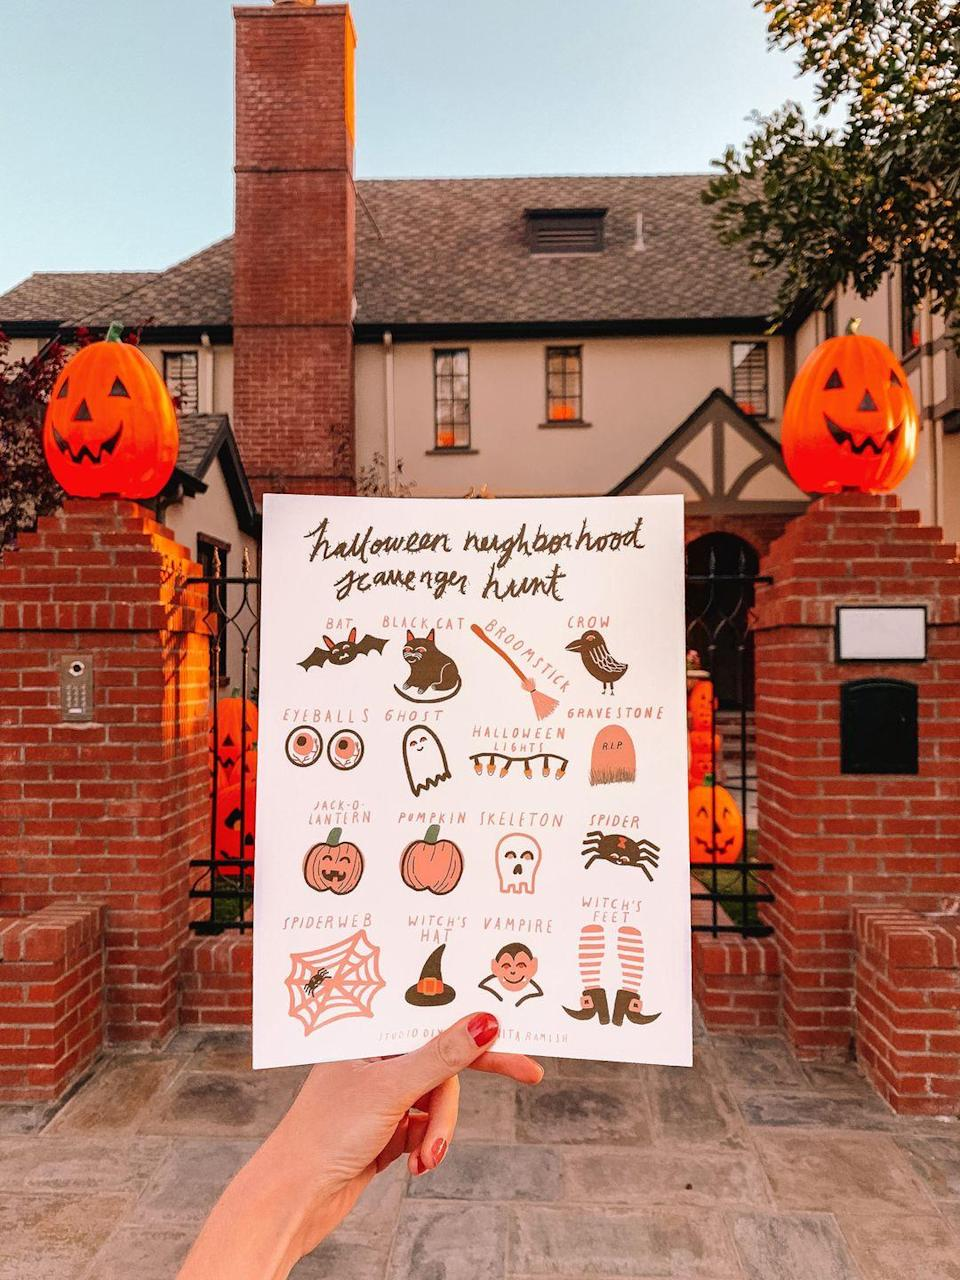 """<p>A neighborhood scavenger hunt is a slam-dunk for family fun any time of year. But give the classic game a Halloween-y twist with this free printable. It will get the family out there in search of pumpkins on stoops, spider webs, blowup ghosts, and more.</p><p><em><a href=""""https://studiodiy.com/neighborhood-halloween-scavenger-hunt-free-printable/"""" rel=""""nofollow noopener"""" target=""""_blank"""" data-ylk=""""slk:Get the printable at Studio DIY »"""" class=""""link rapid-noclick-resp"""">Get the printable at Studio DIY »</a></em></p><p><strong>RELATED</strong>: <a href=""""https://www.goodhousekeeping.com/life/parenting/g32050844/scavenger-hunt-ideas-for-kids/"""" rel=""""nofollow noopener"""" target=""""_blank"""" data-ylk=""""slk:22 Fun Scavenger Hunt Ideas to Keep Your Kids Guessing"""" class=""""link rapid-noclick-resp"""">22 Fun Scavenger Hunt Ideas to Keep Your Kids Guessing</a></p>"""